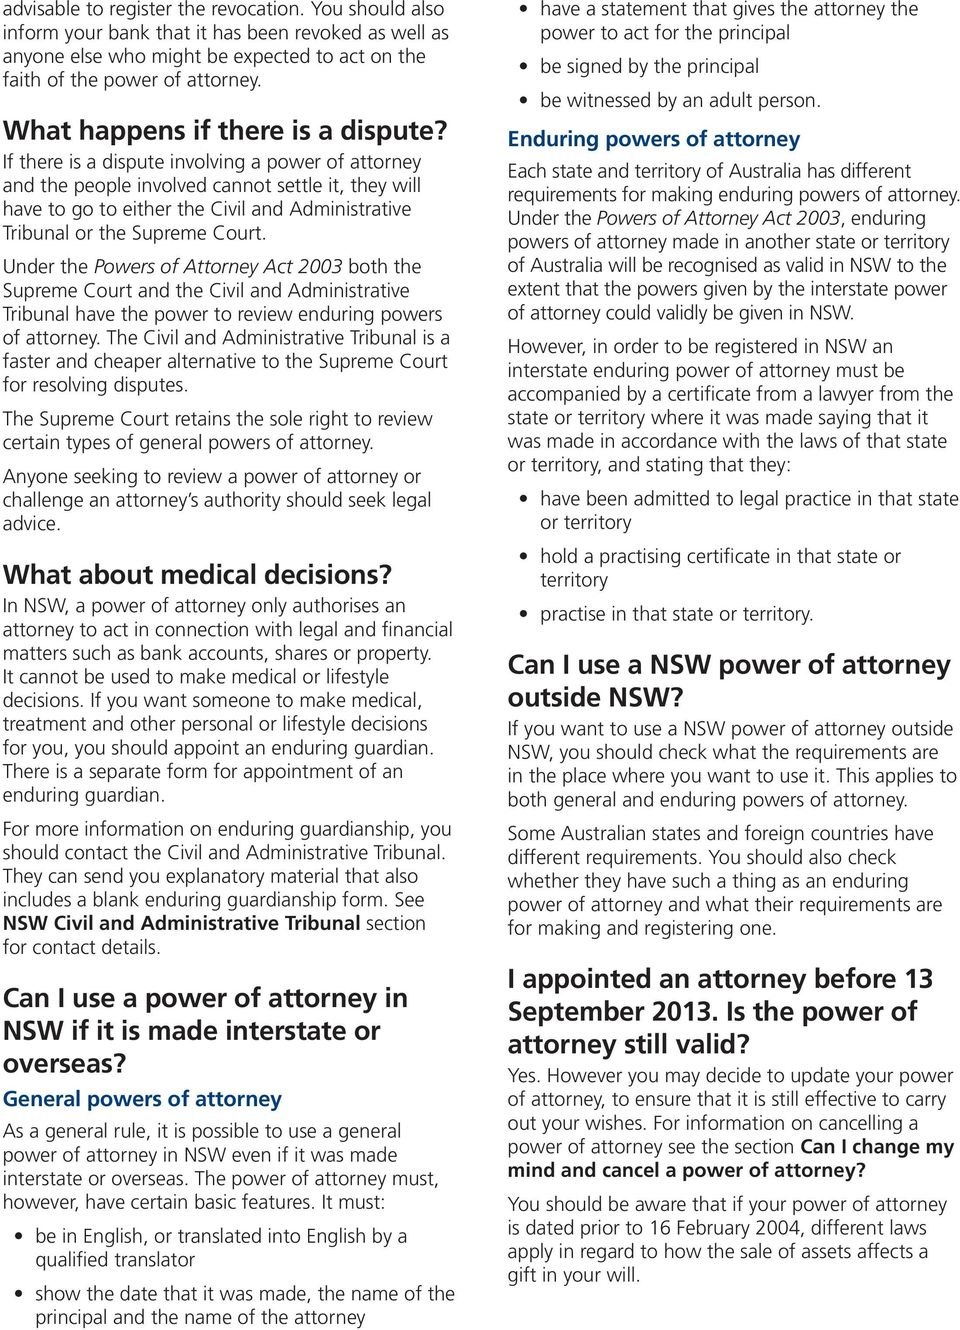 If there is a dispute involving a power of attorney and the people involved cannot settle it, they will have to go to either the Civil and Administrative Tribunal or the Supreme Court.